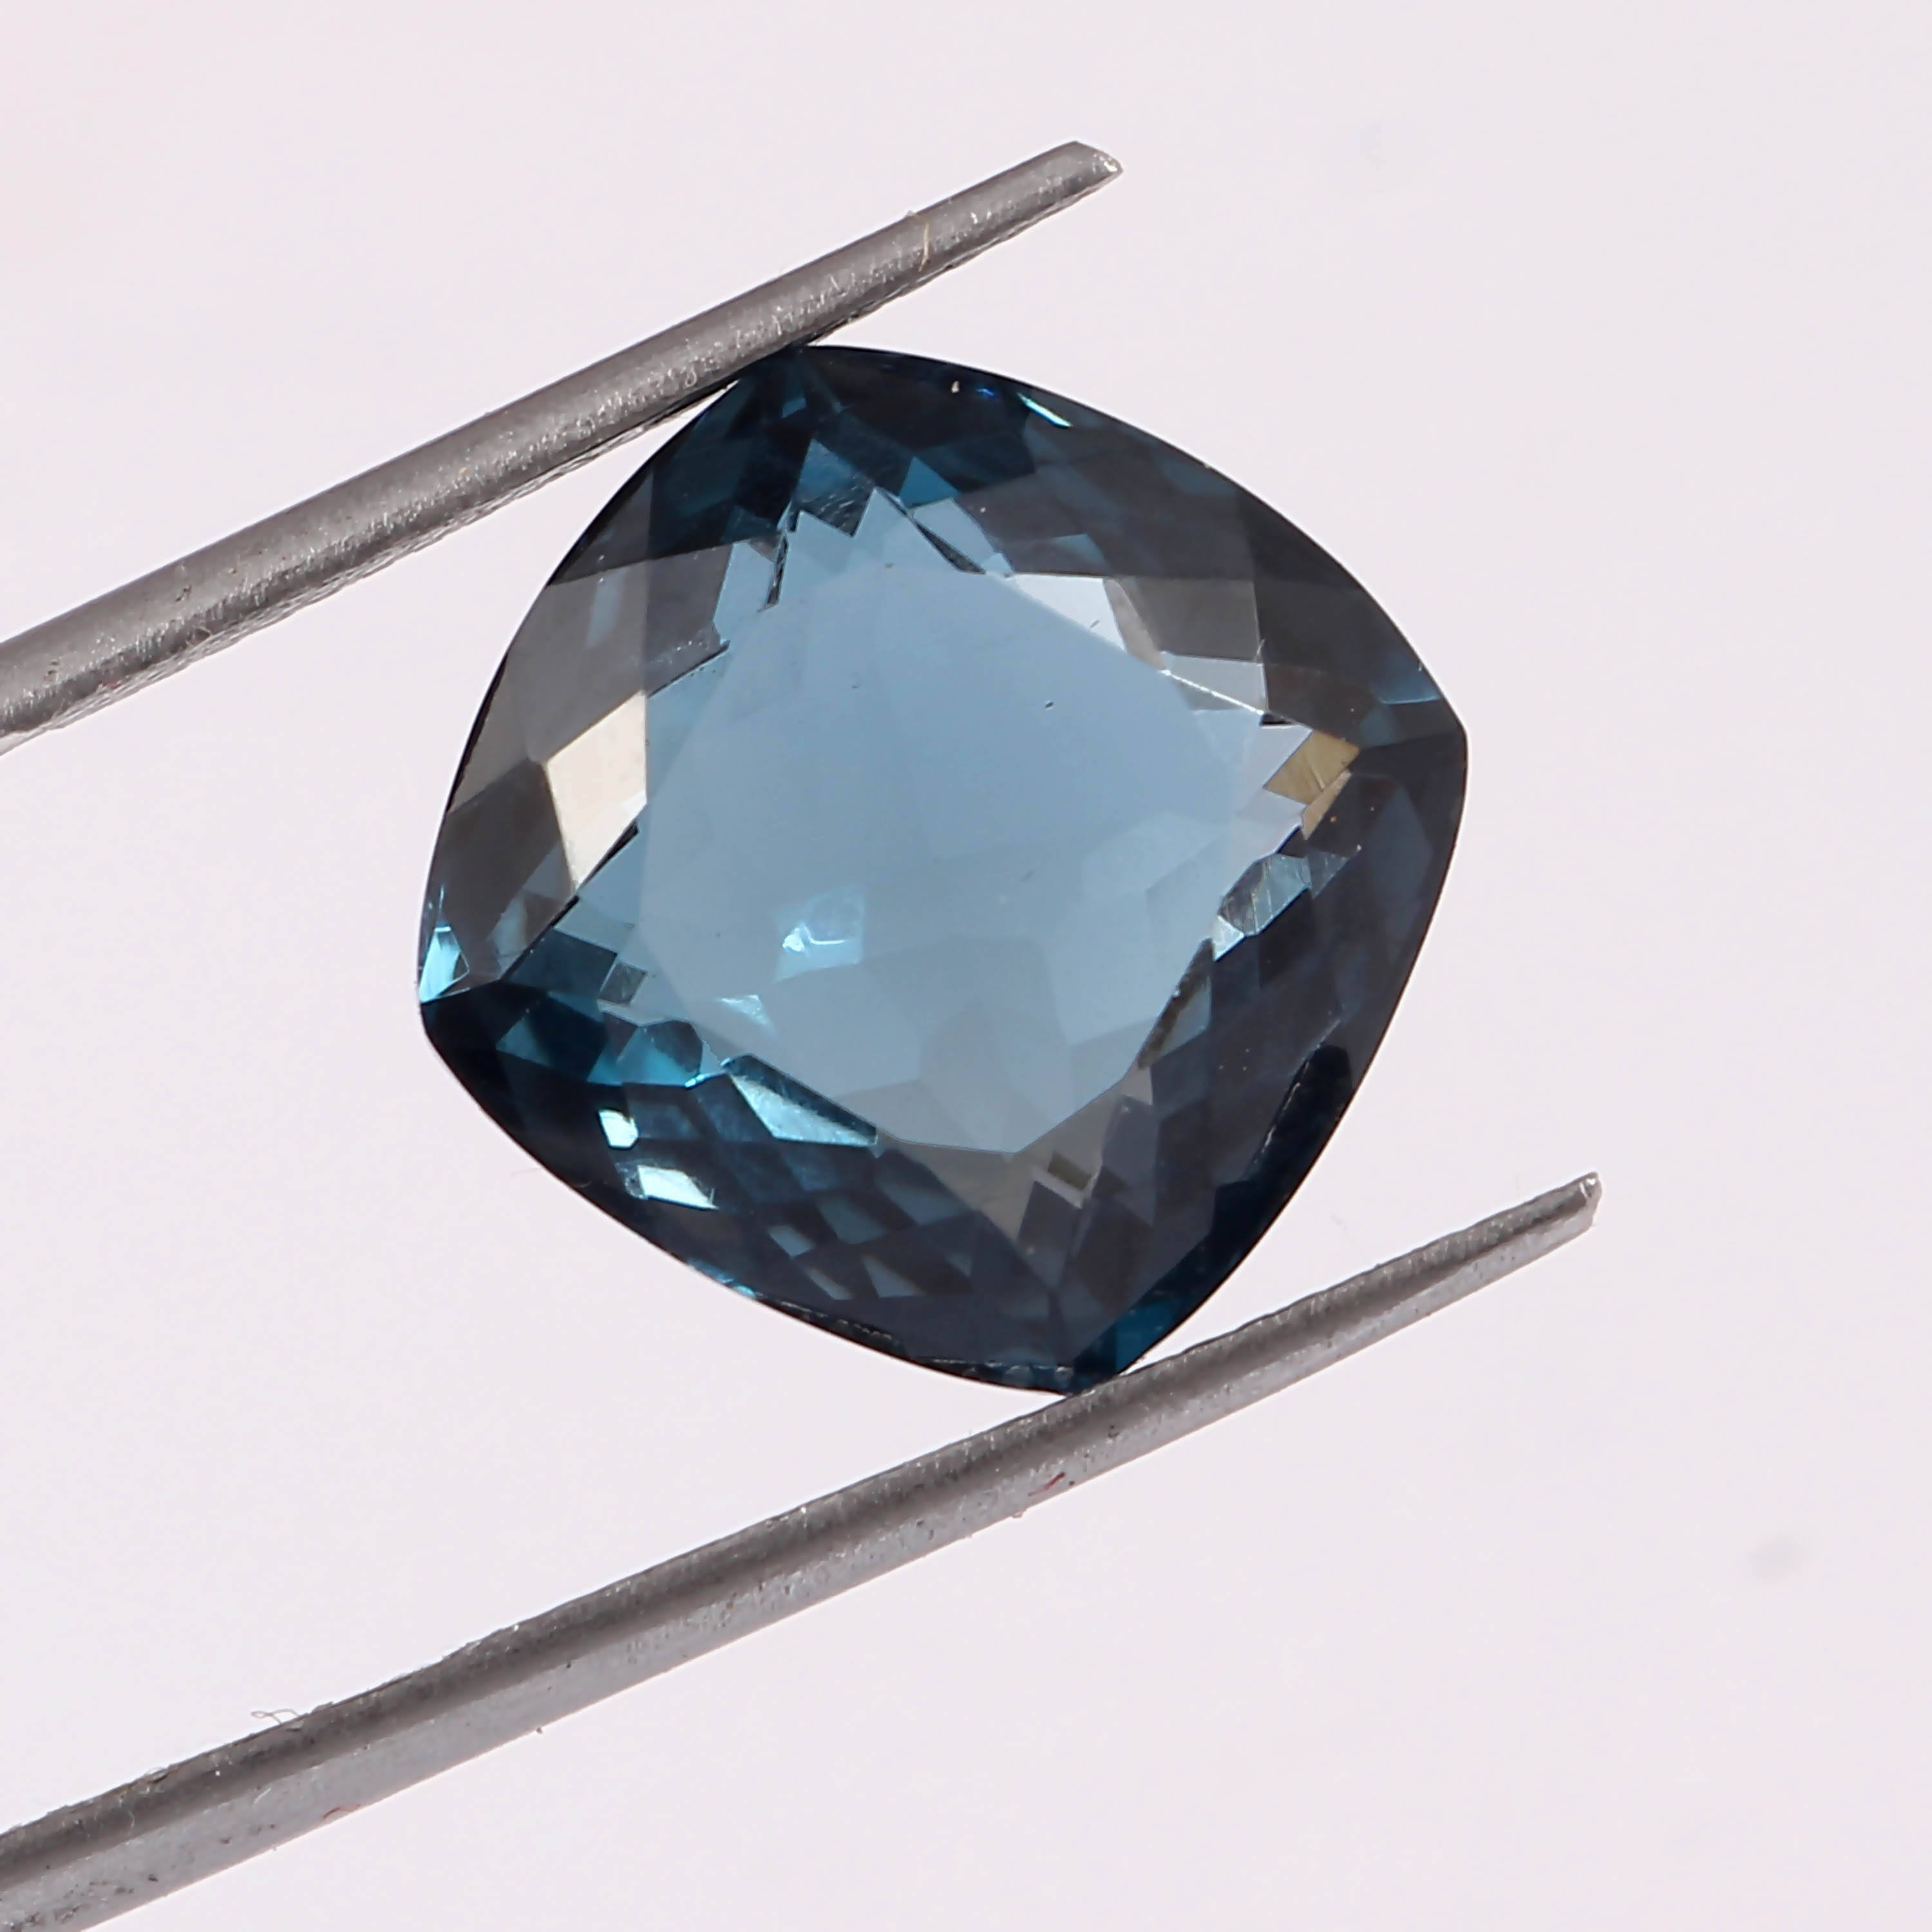 14.95 Cts. Natural London Blue Topaz Faceted Cushion Shape Loose Gemstone, 100% Natural Gemstone For Making Jewelry, 14 MM